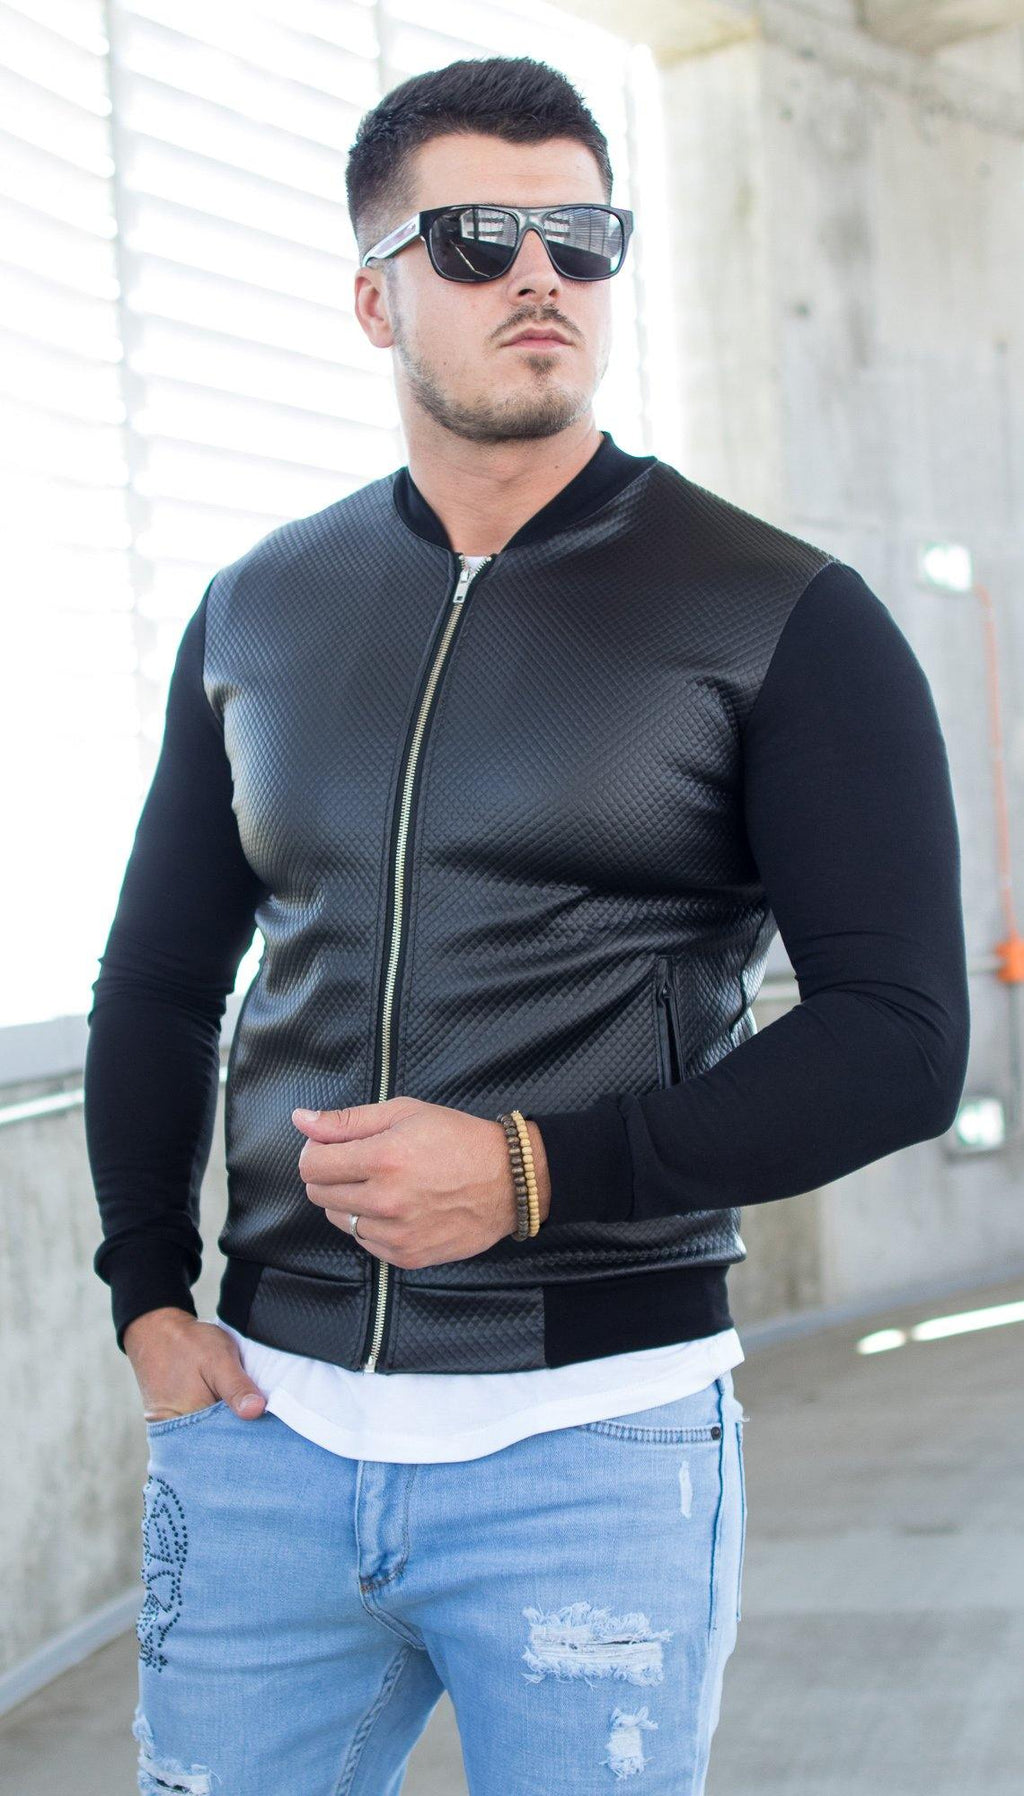 Geaca Subtire Leather Feel - Neagra - street-style-ro